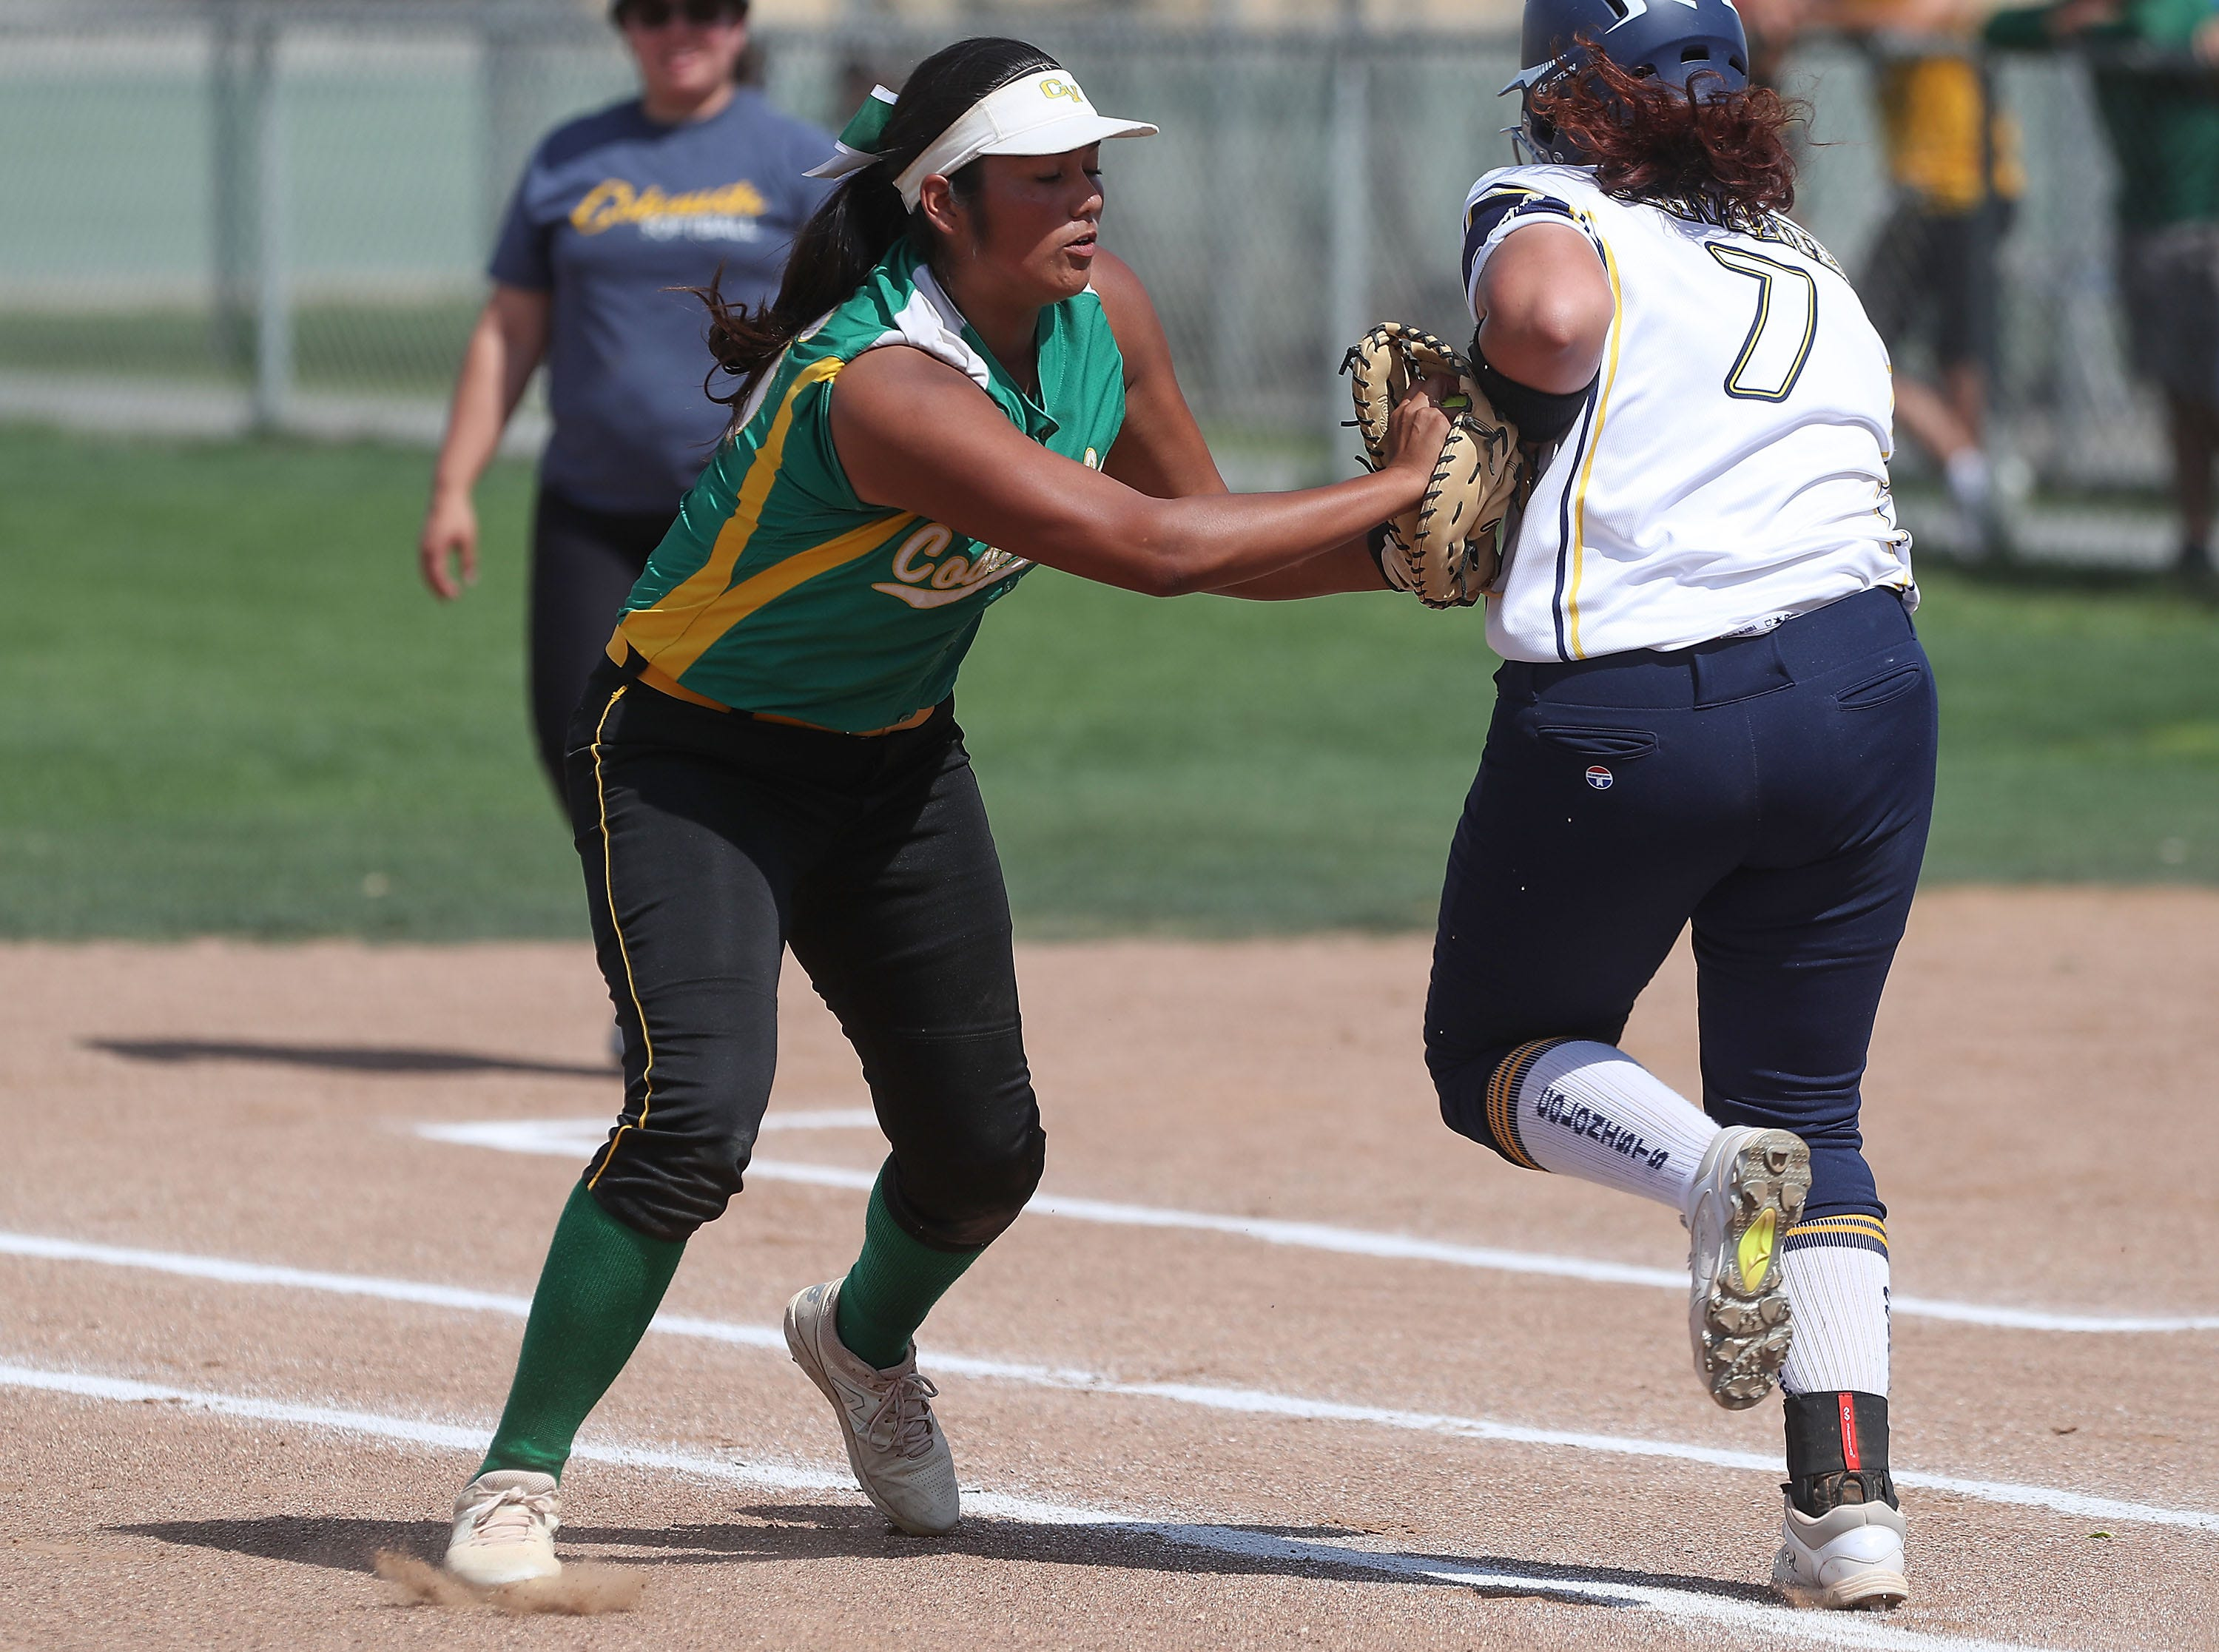 Cheyenne Sandoval of Coachella Valley makes an out against Anaheim during the Arabs loss, May 9, 2019.